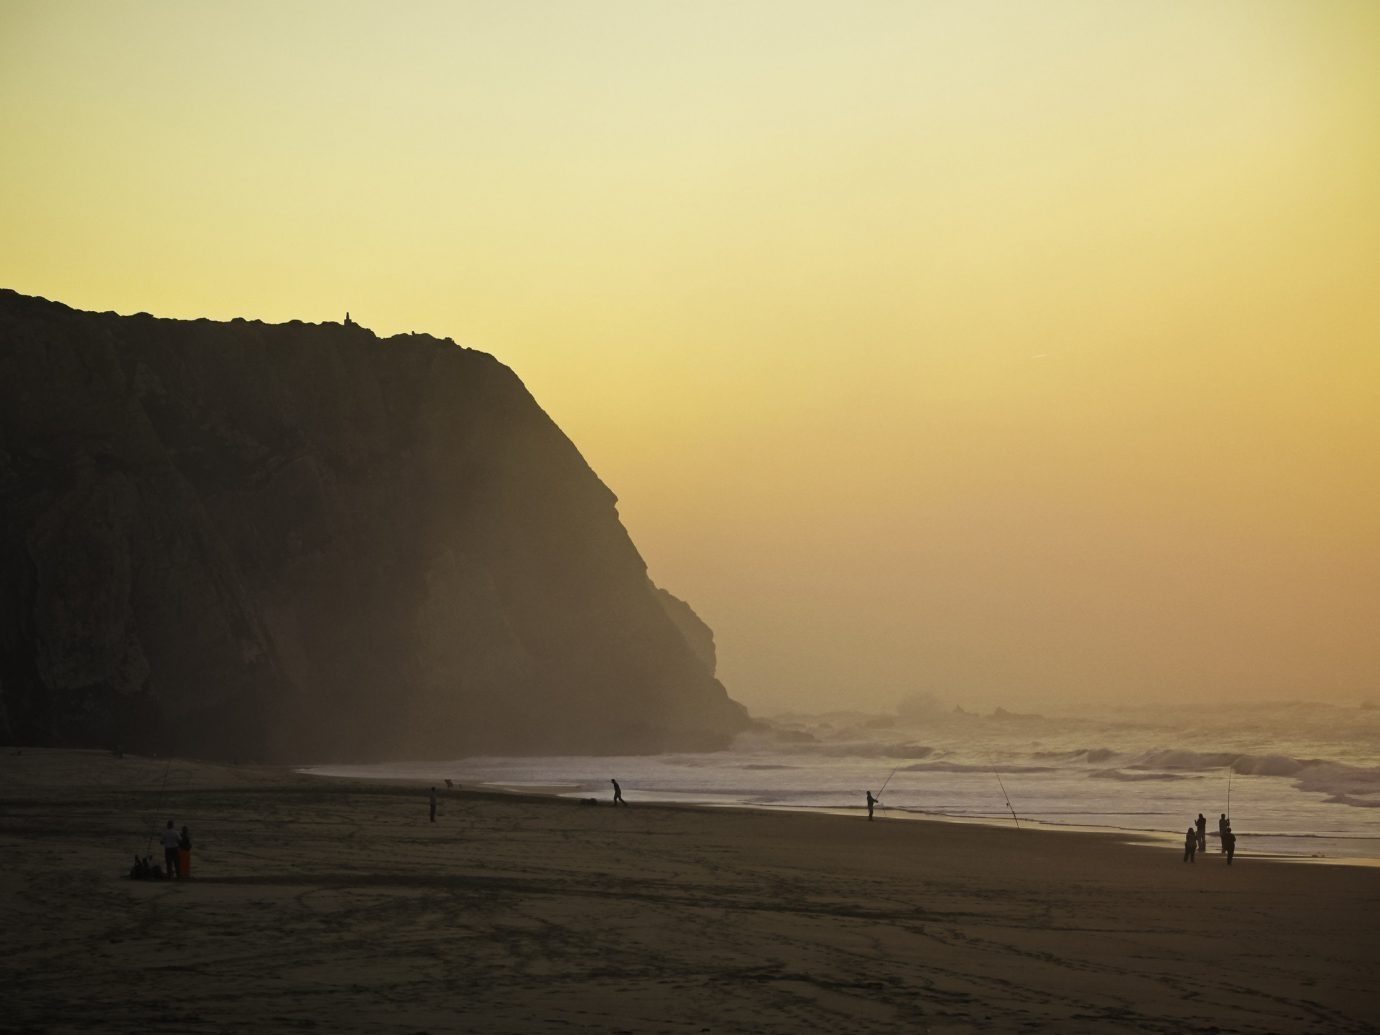 Fishing at Sintra beach during sunset